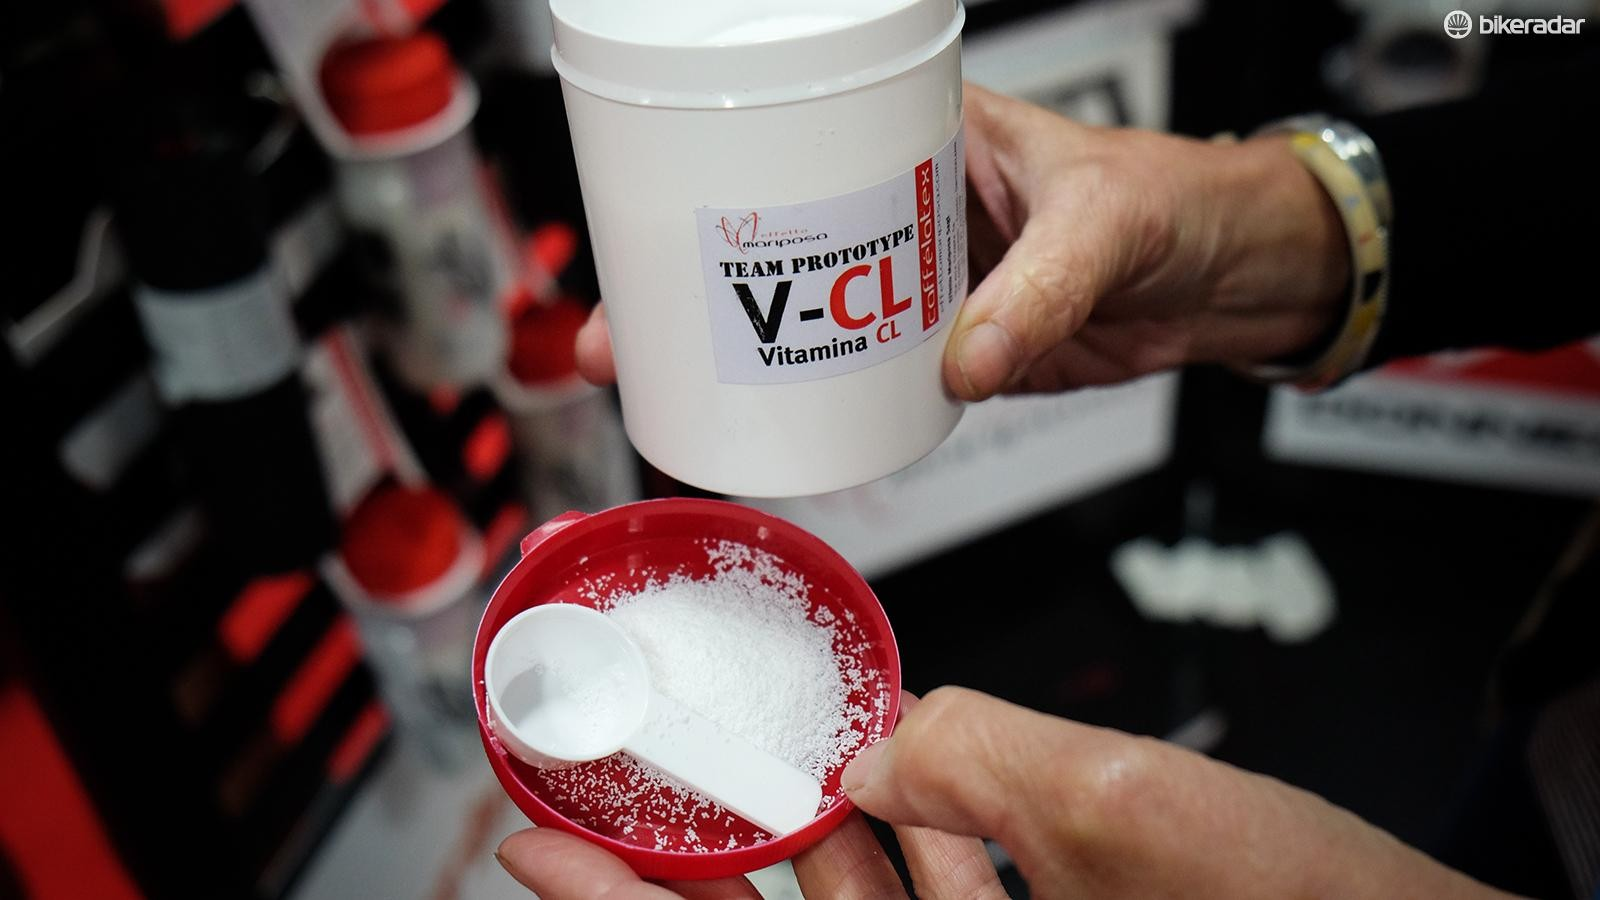 Cafelatex claims that V-CL can seal punctures that latex alone cannot